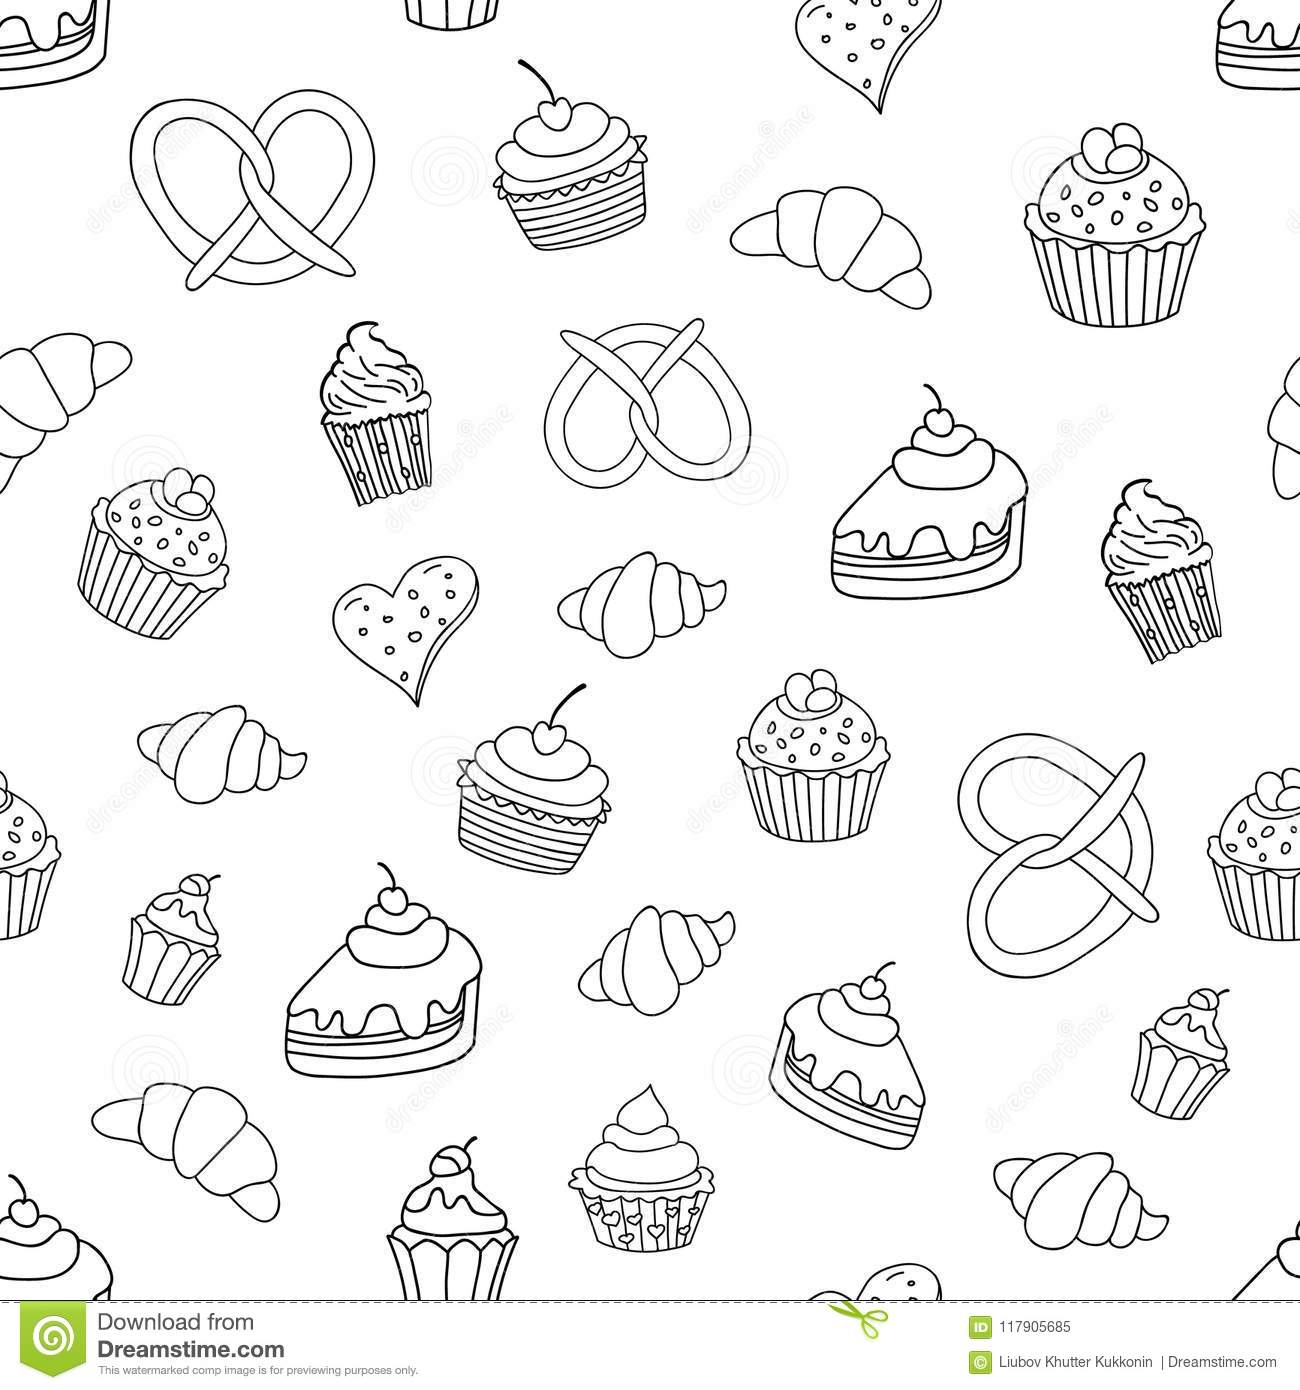 Seamless pattern with sweets, pies, cupcakes, ice cream, bakery products. Vector illustration